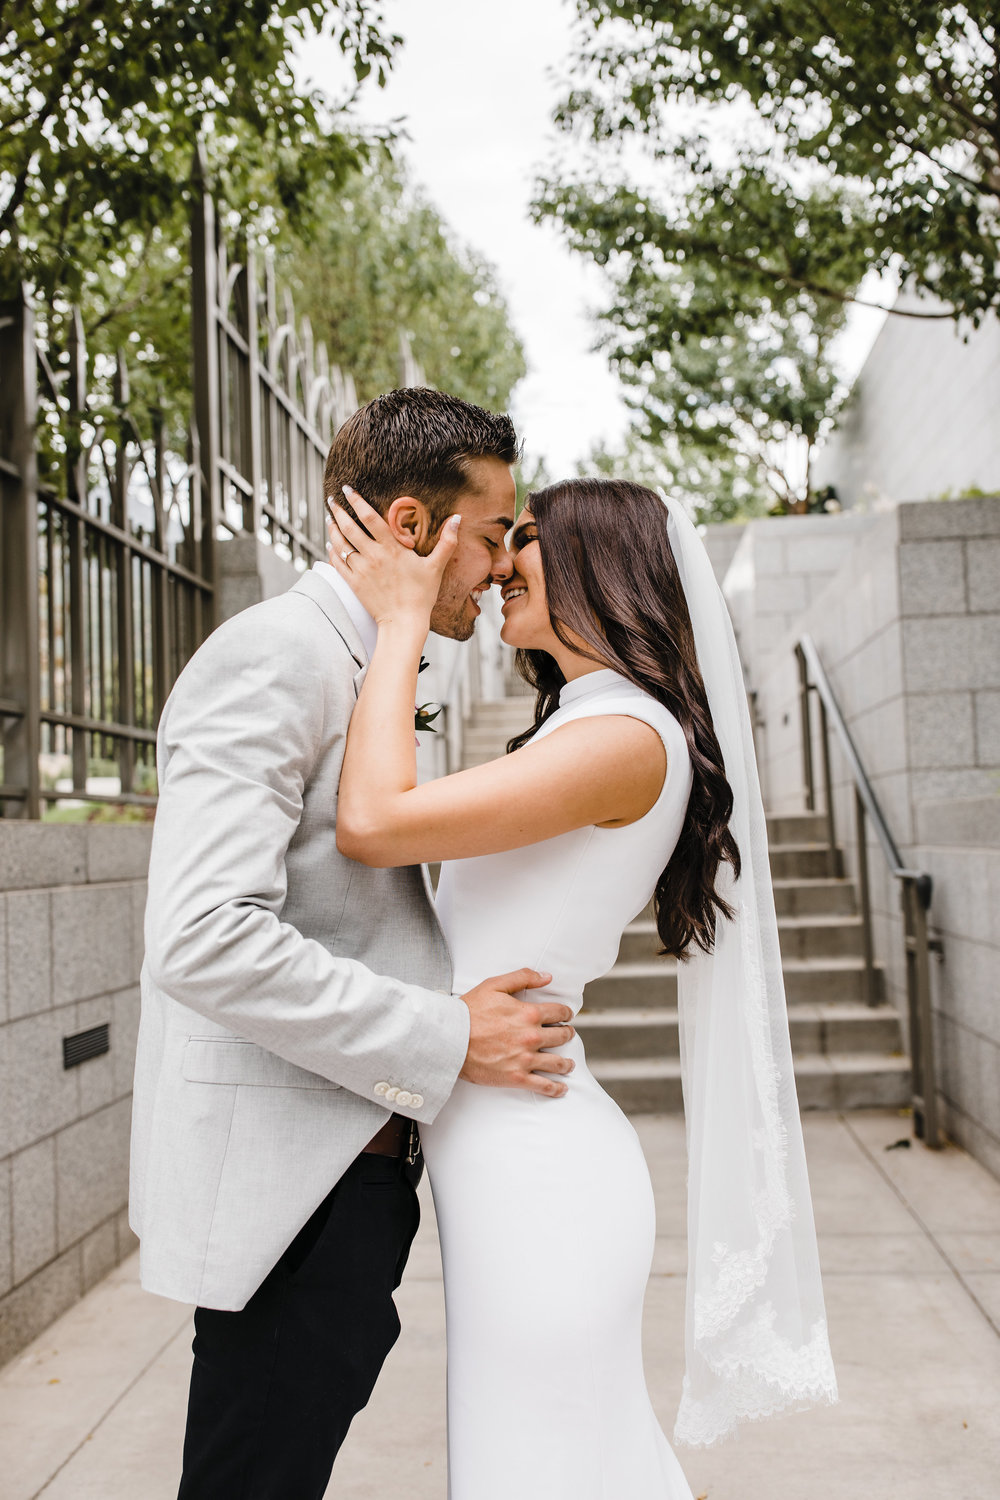 utah valley wedding photographer lds temple kissing laughing romantic